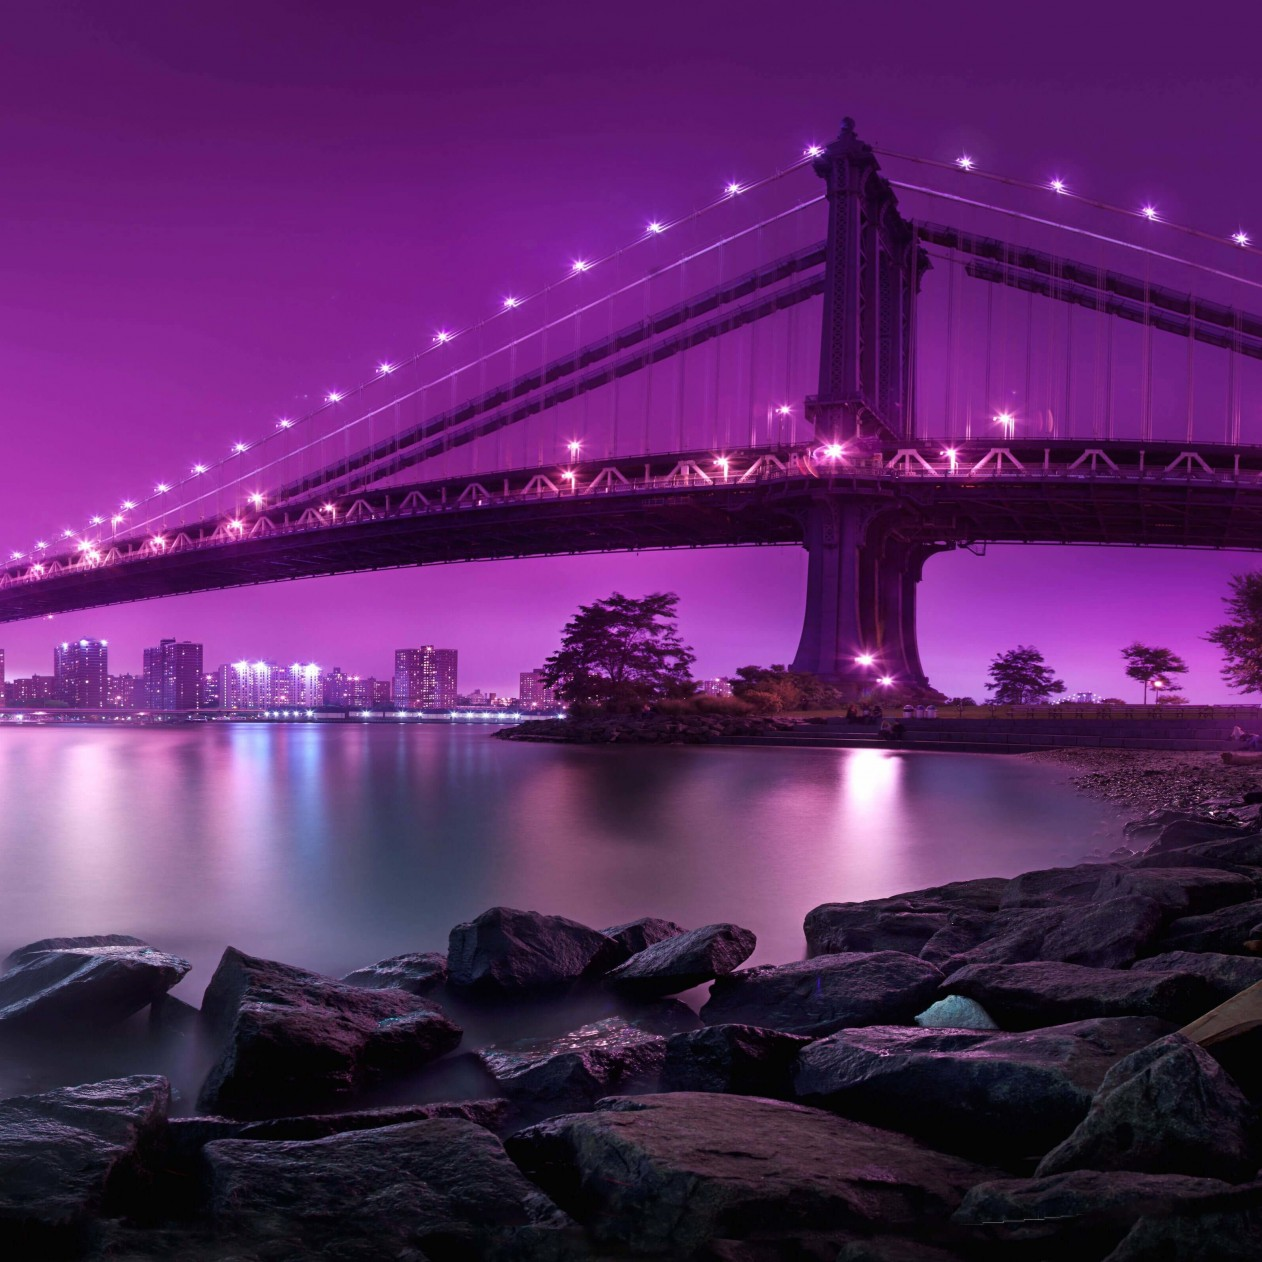 Brooklyn Bridge by night Wallpaper for Apple iPad mini